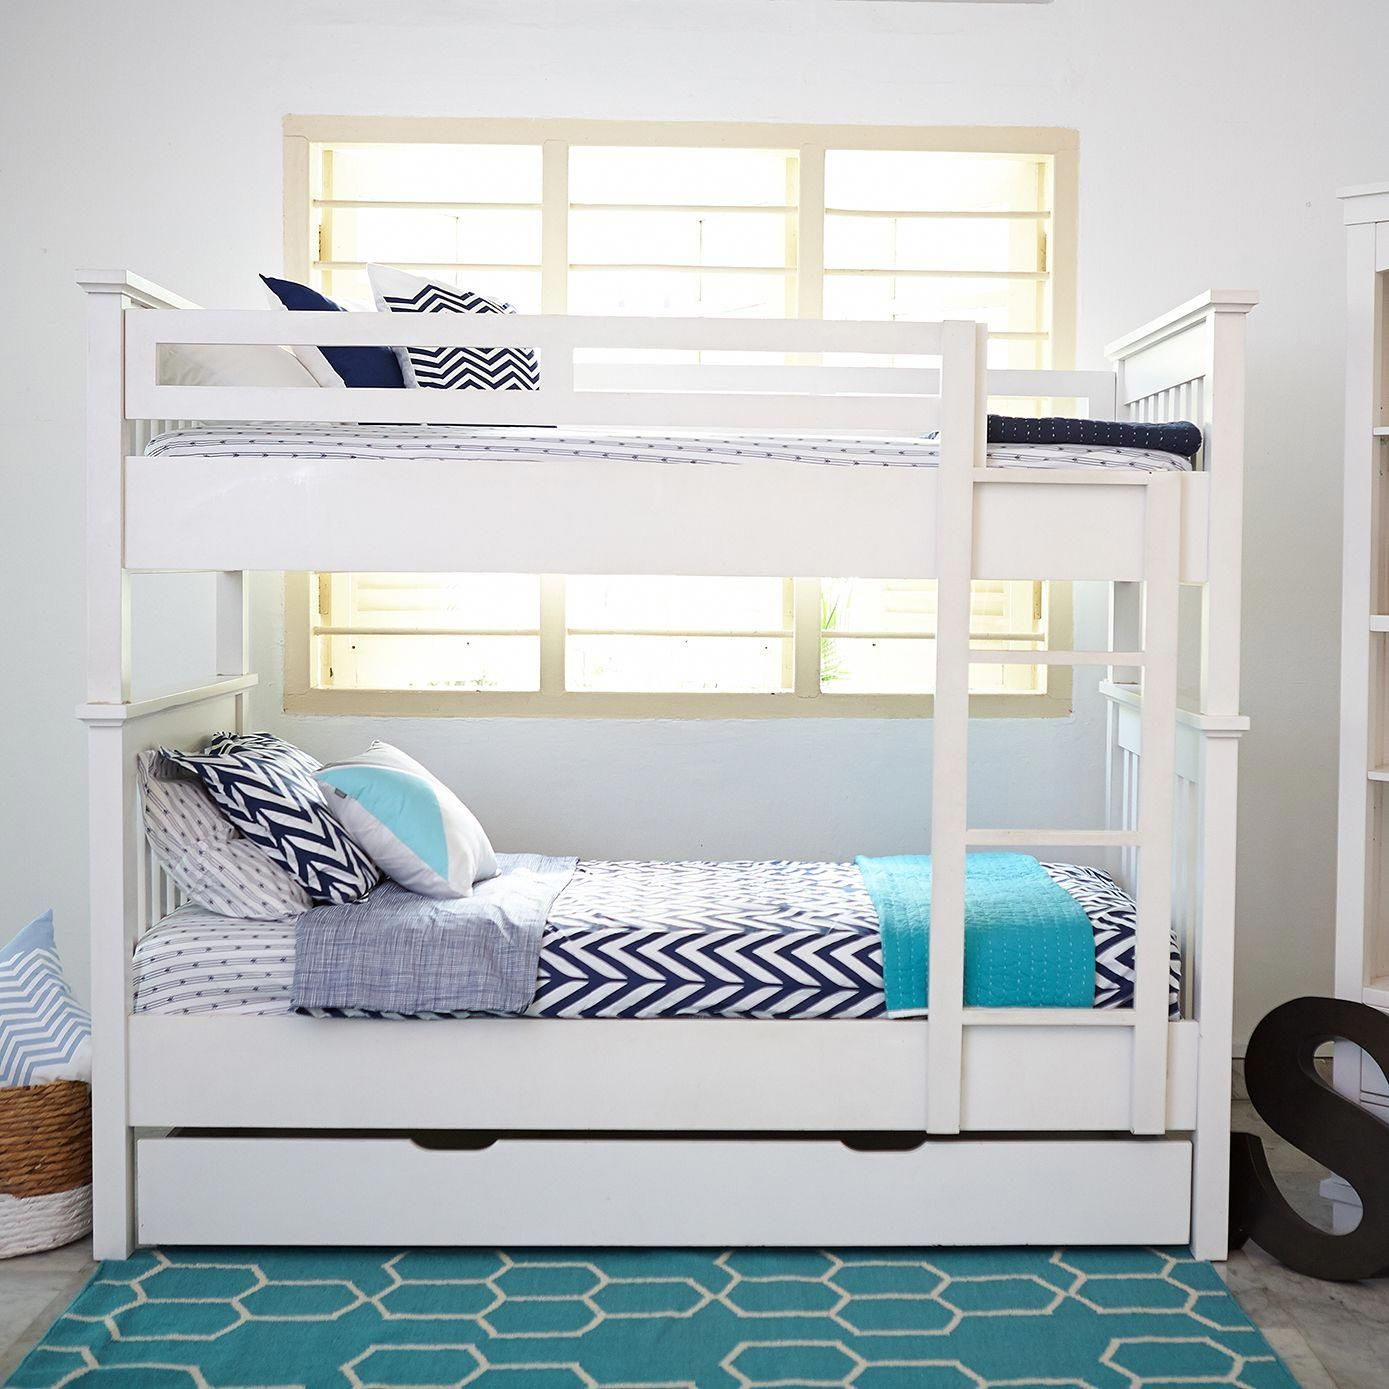 Bunk Beds Bed Frame Queen Size Bed Bedroom Furniture Kids Beds Queen